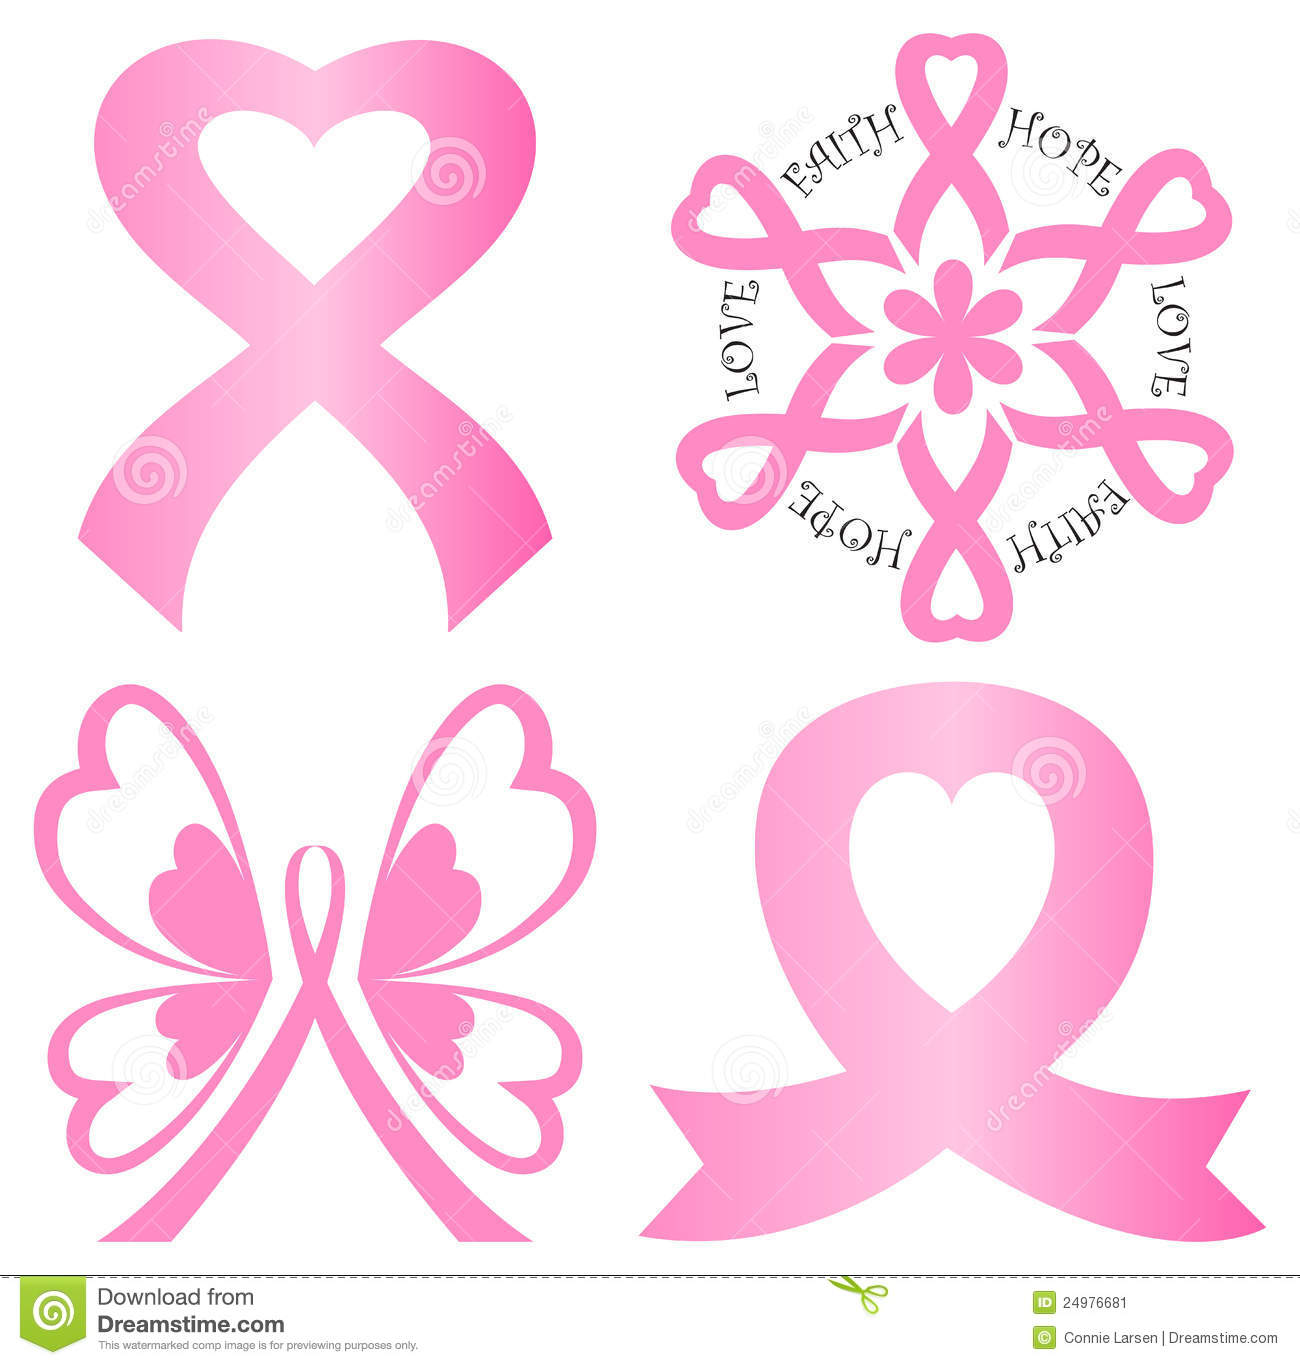 Cancer Stock Illustrations, Vectors, & Clipart.